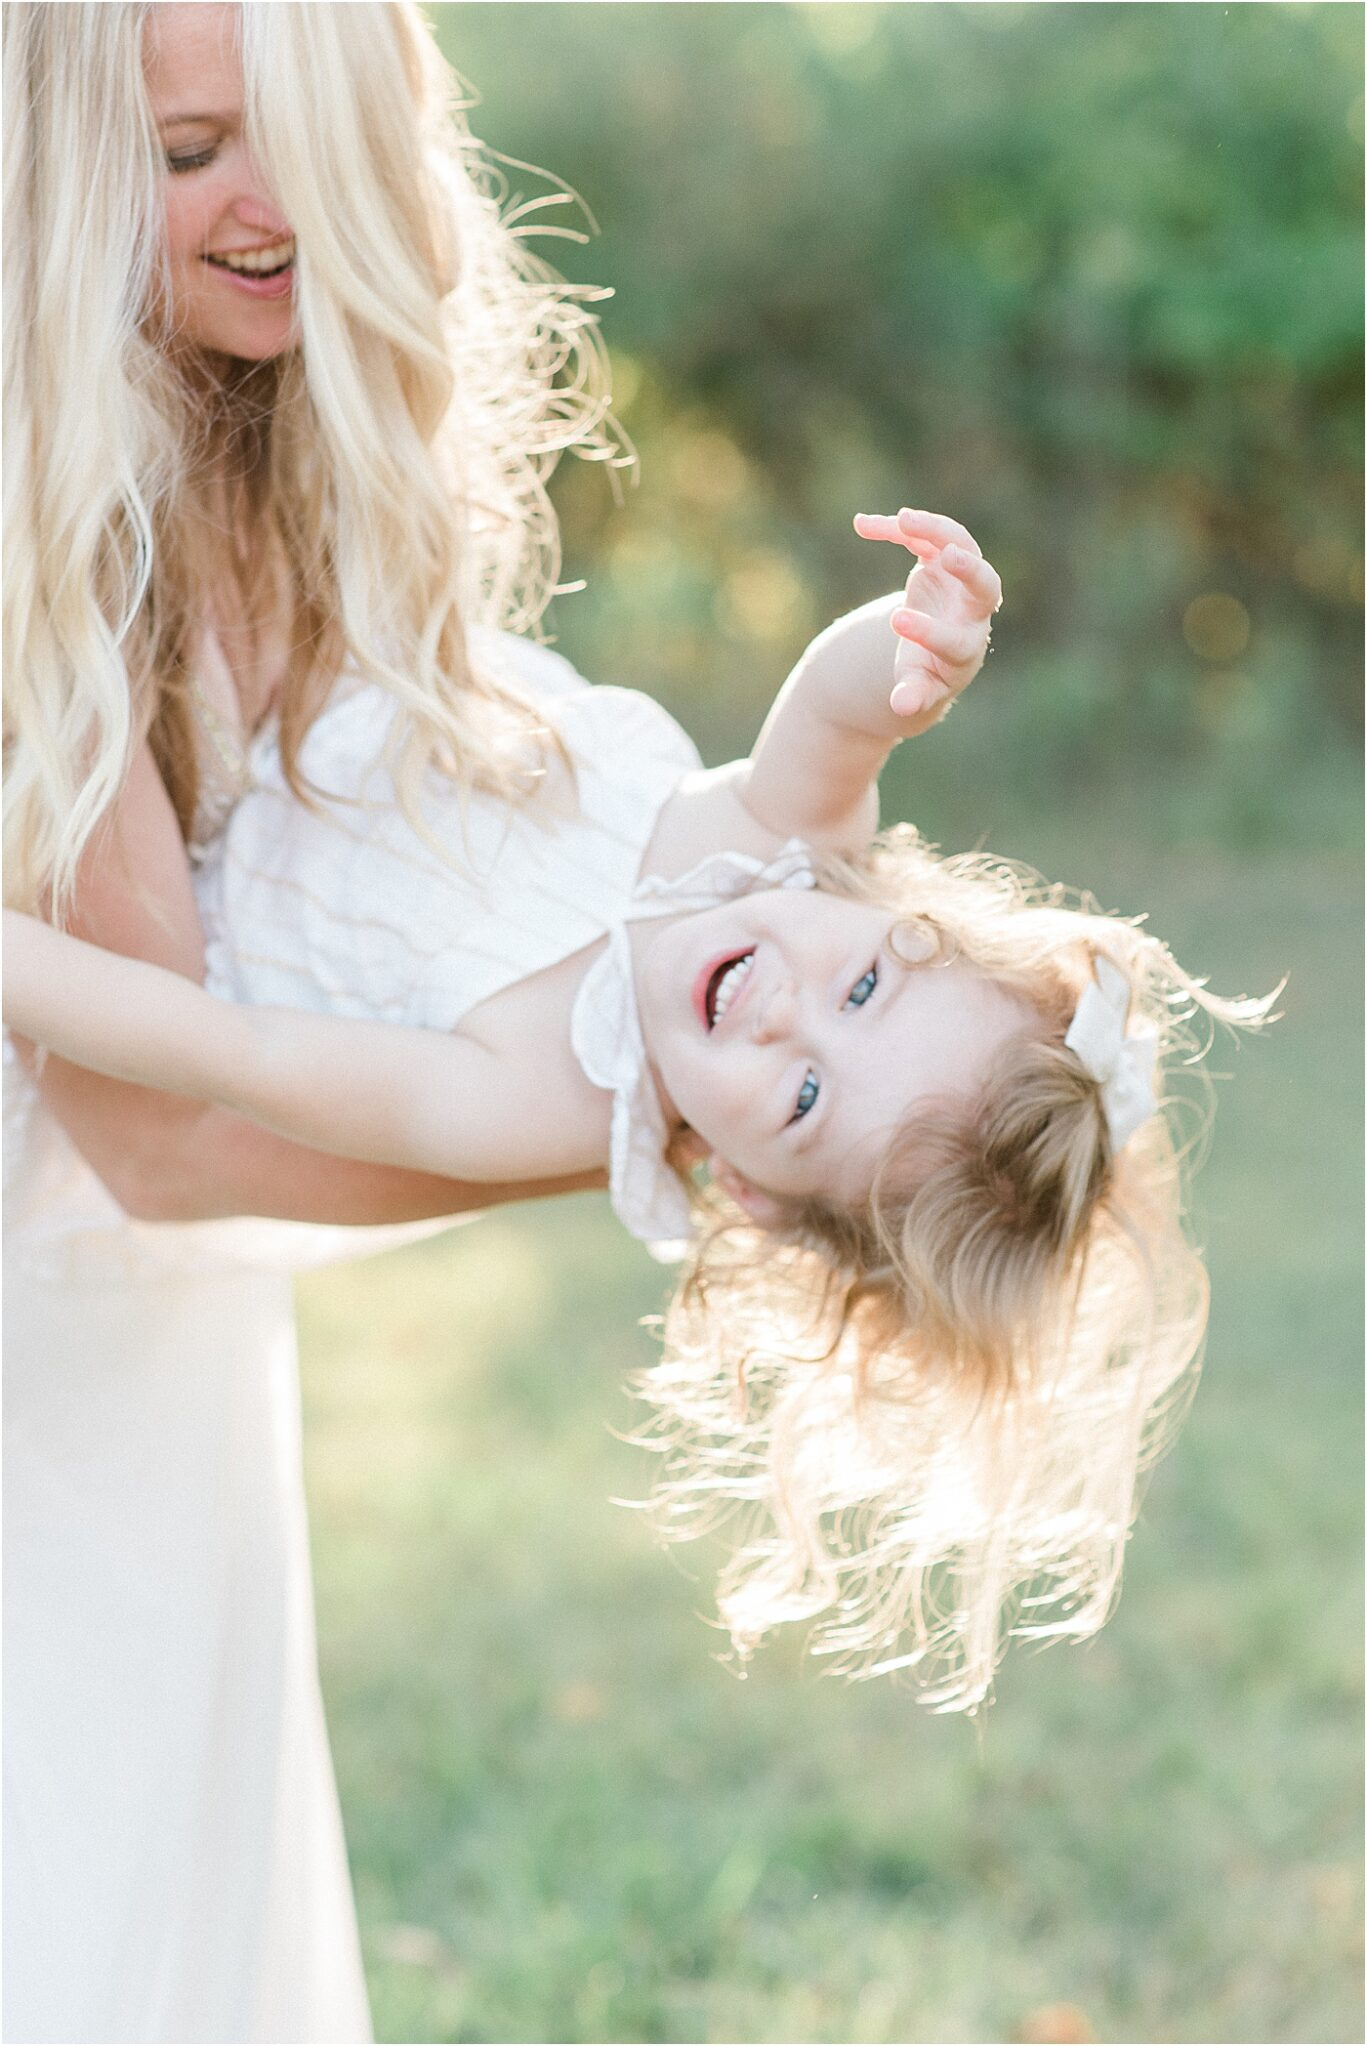 Little girl laughing as Mom dances with her. Photo by Lindsay Konopa Photography.